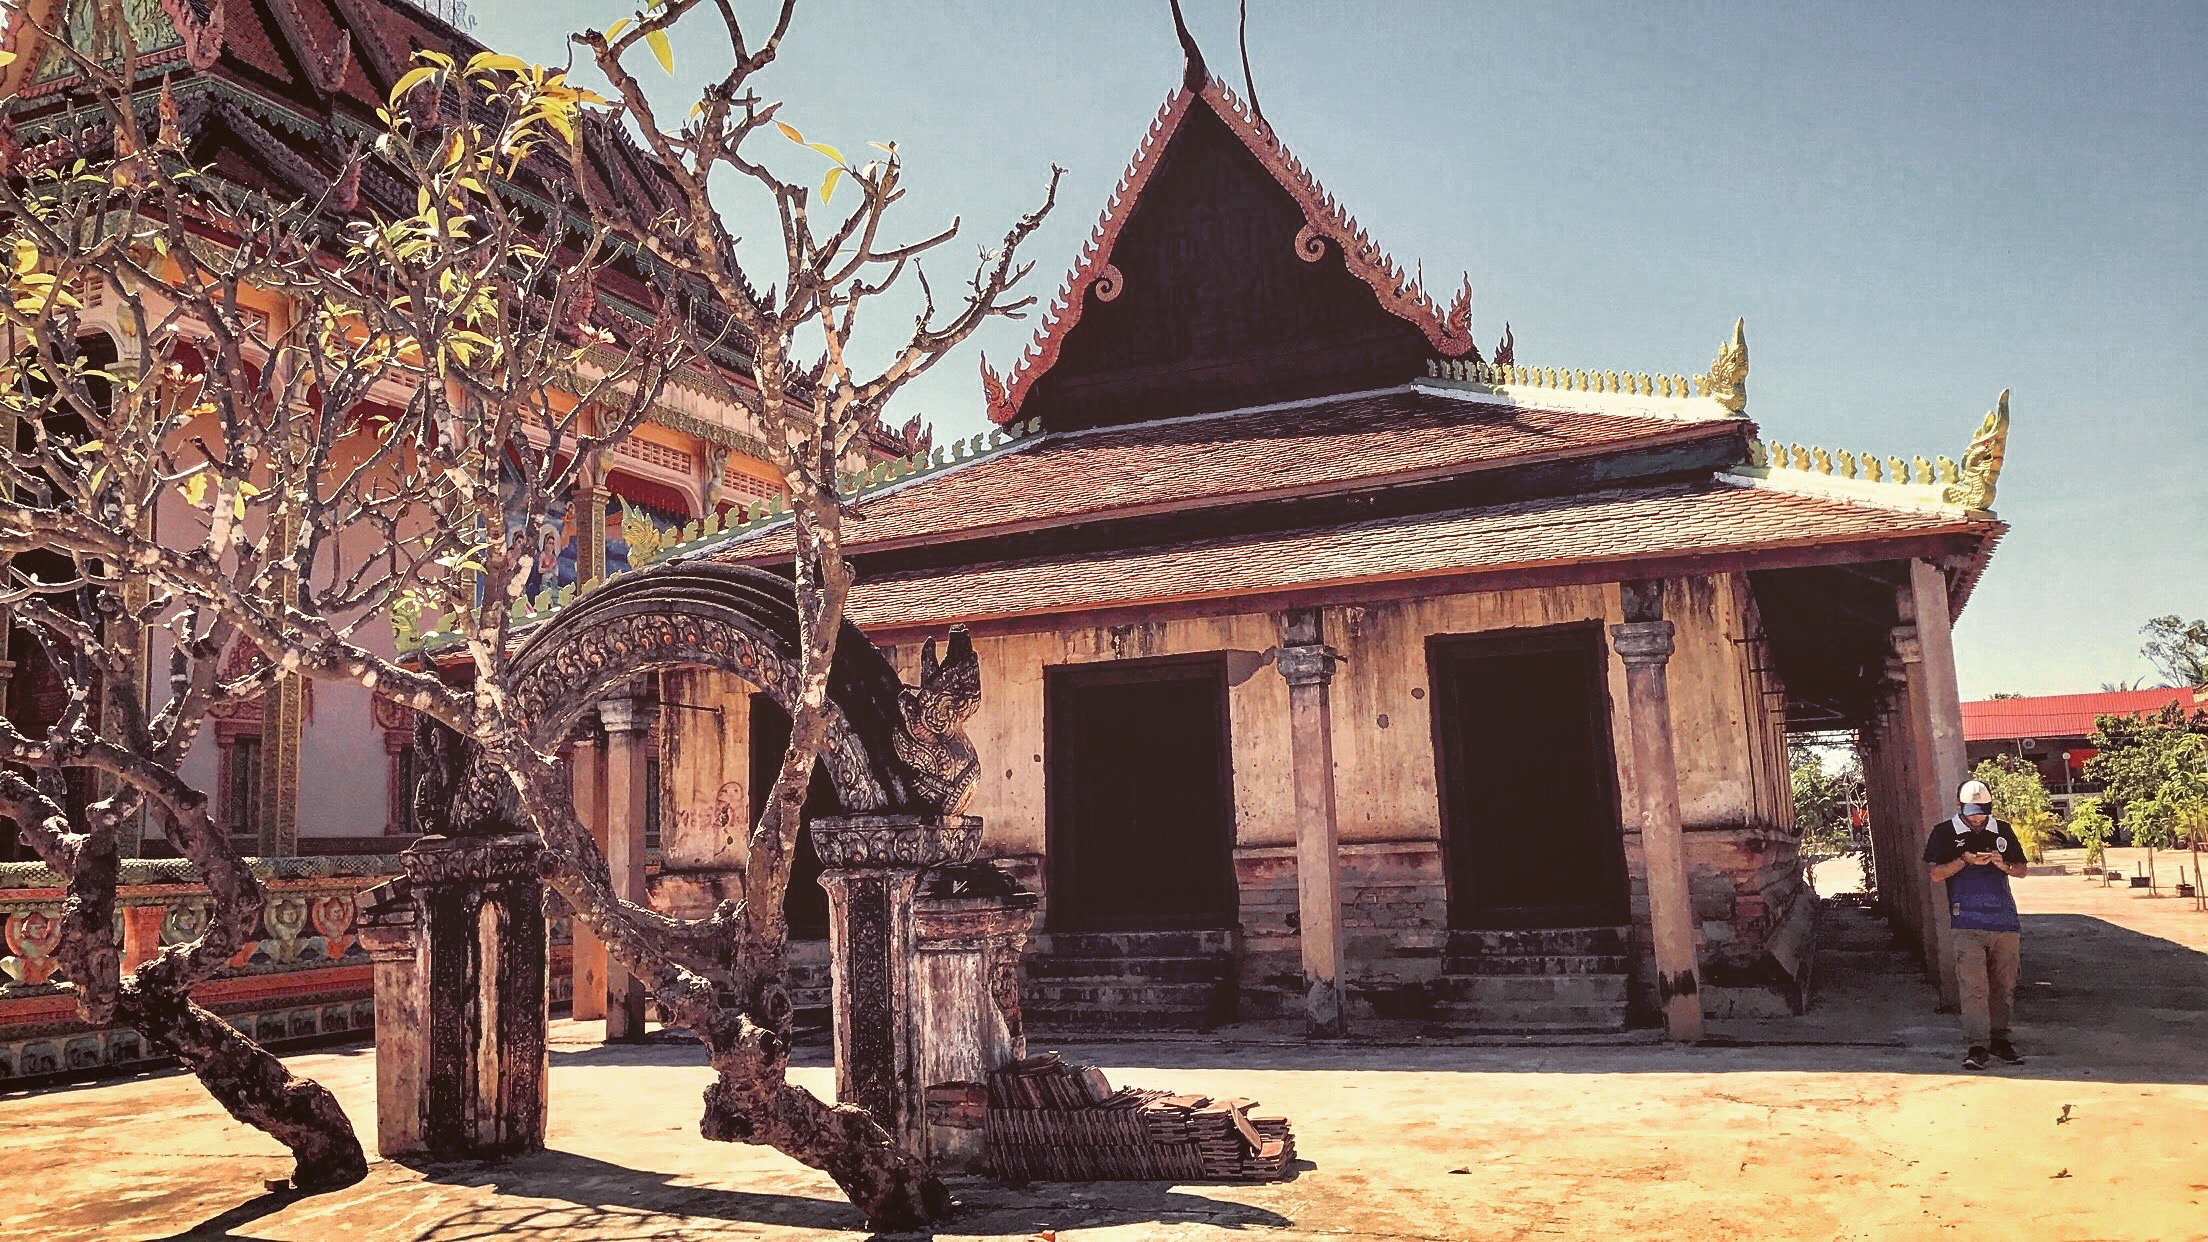 A 115 Year Old Monastery in Siem Reap Cambodia